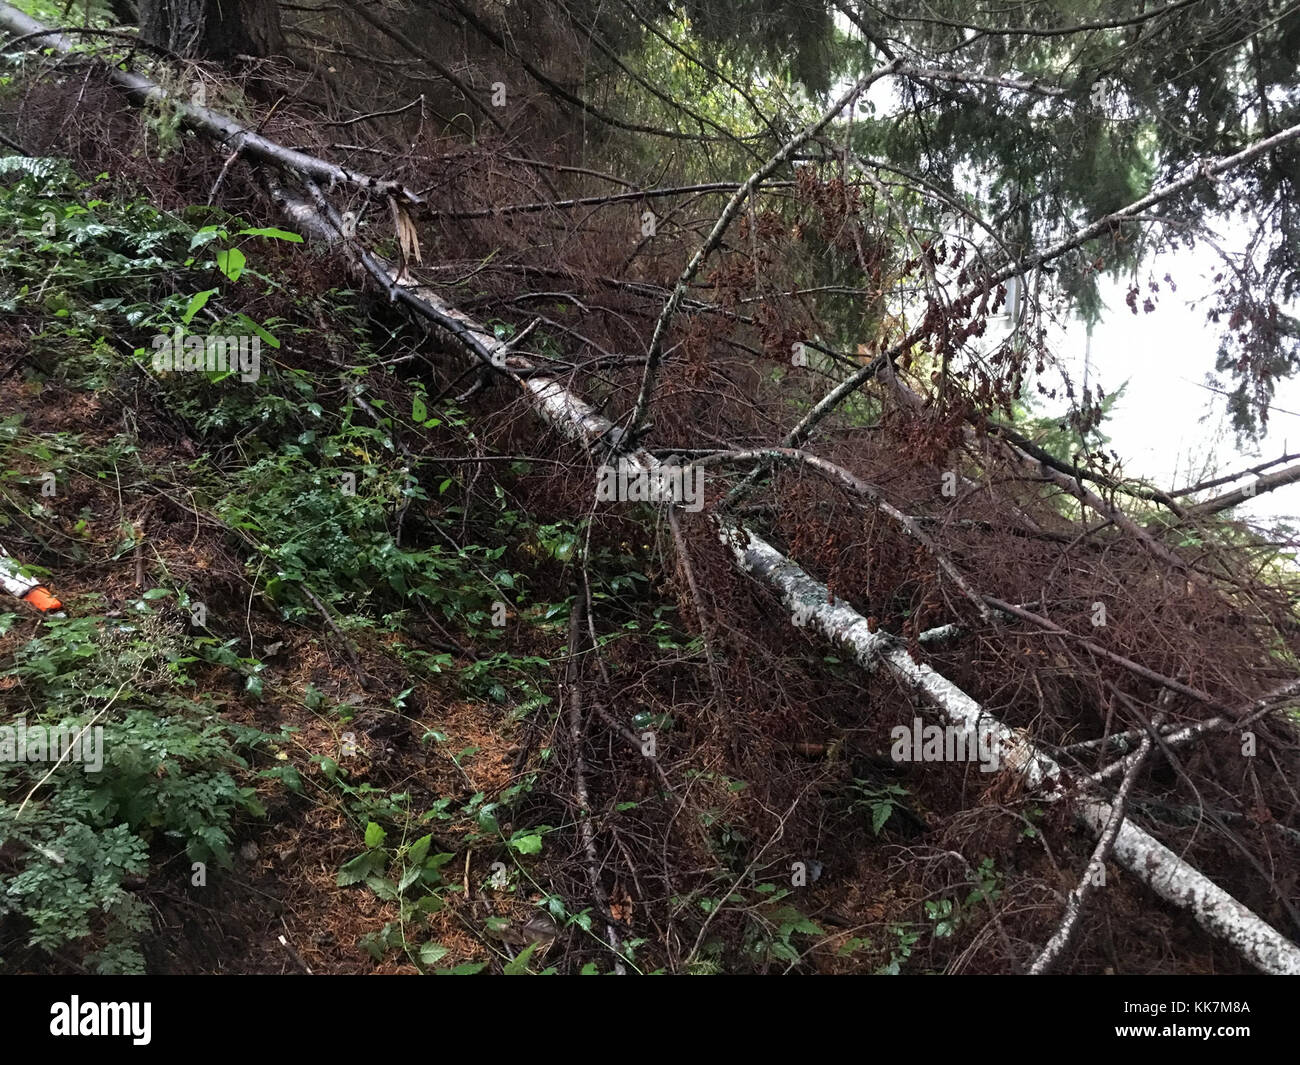 Woodinville Stock Photos & Woodinville Stock Images - Alamy